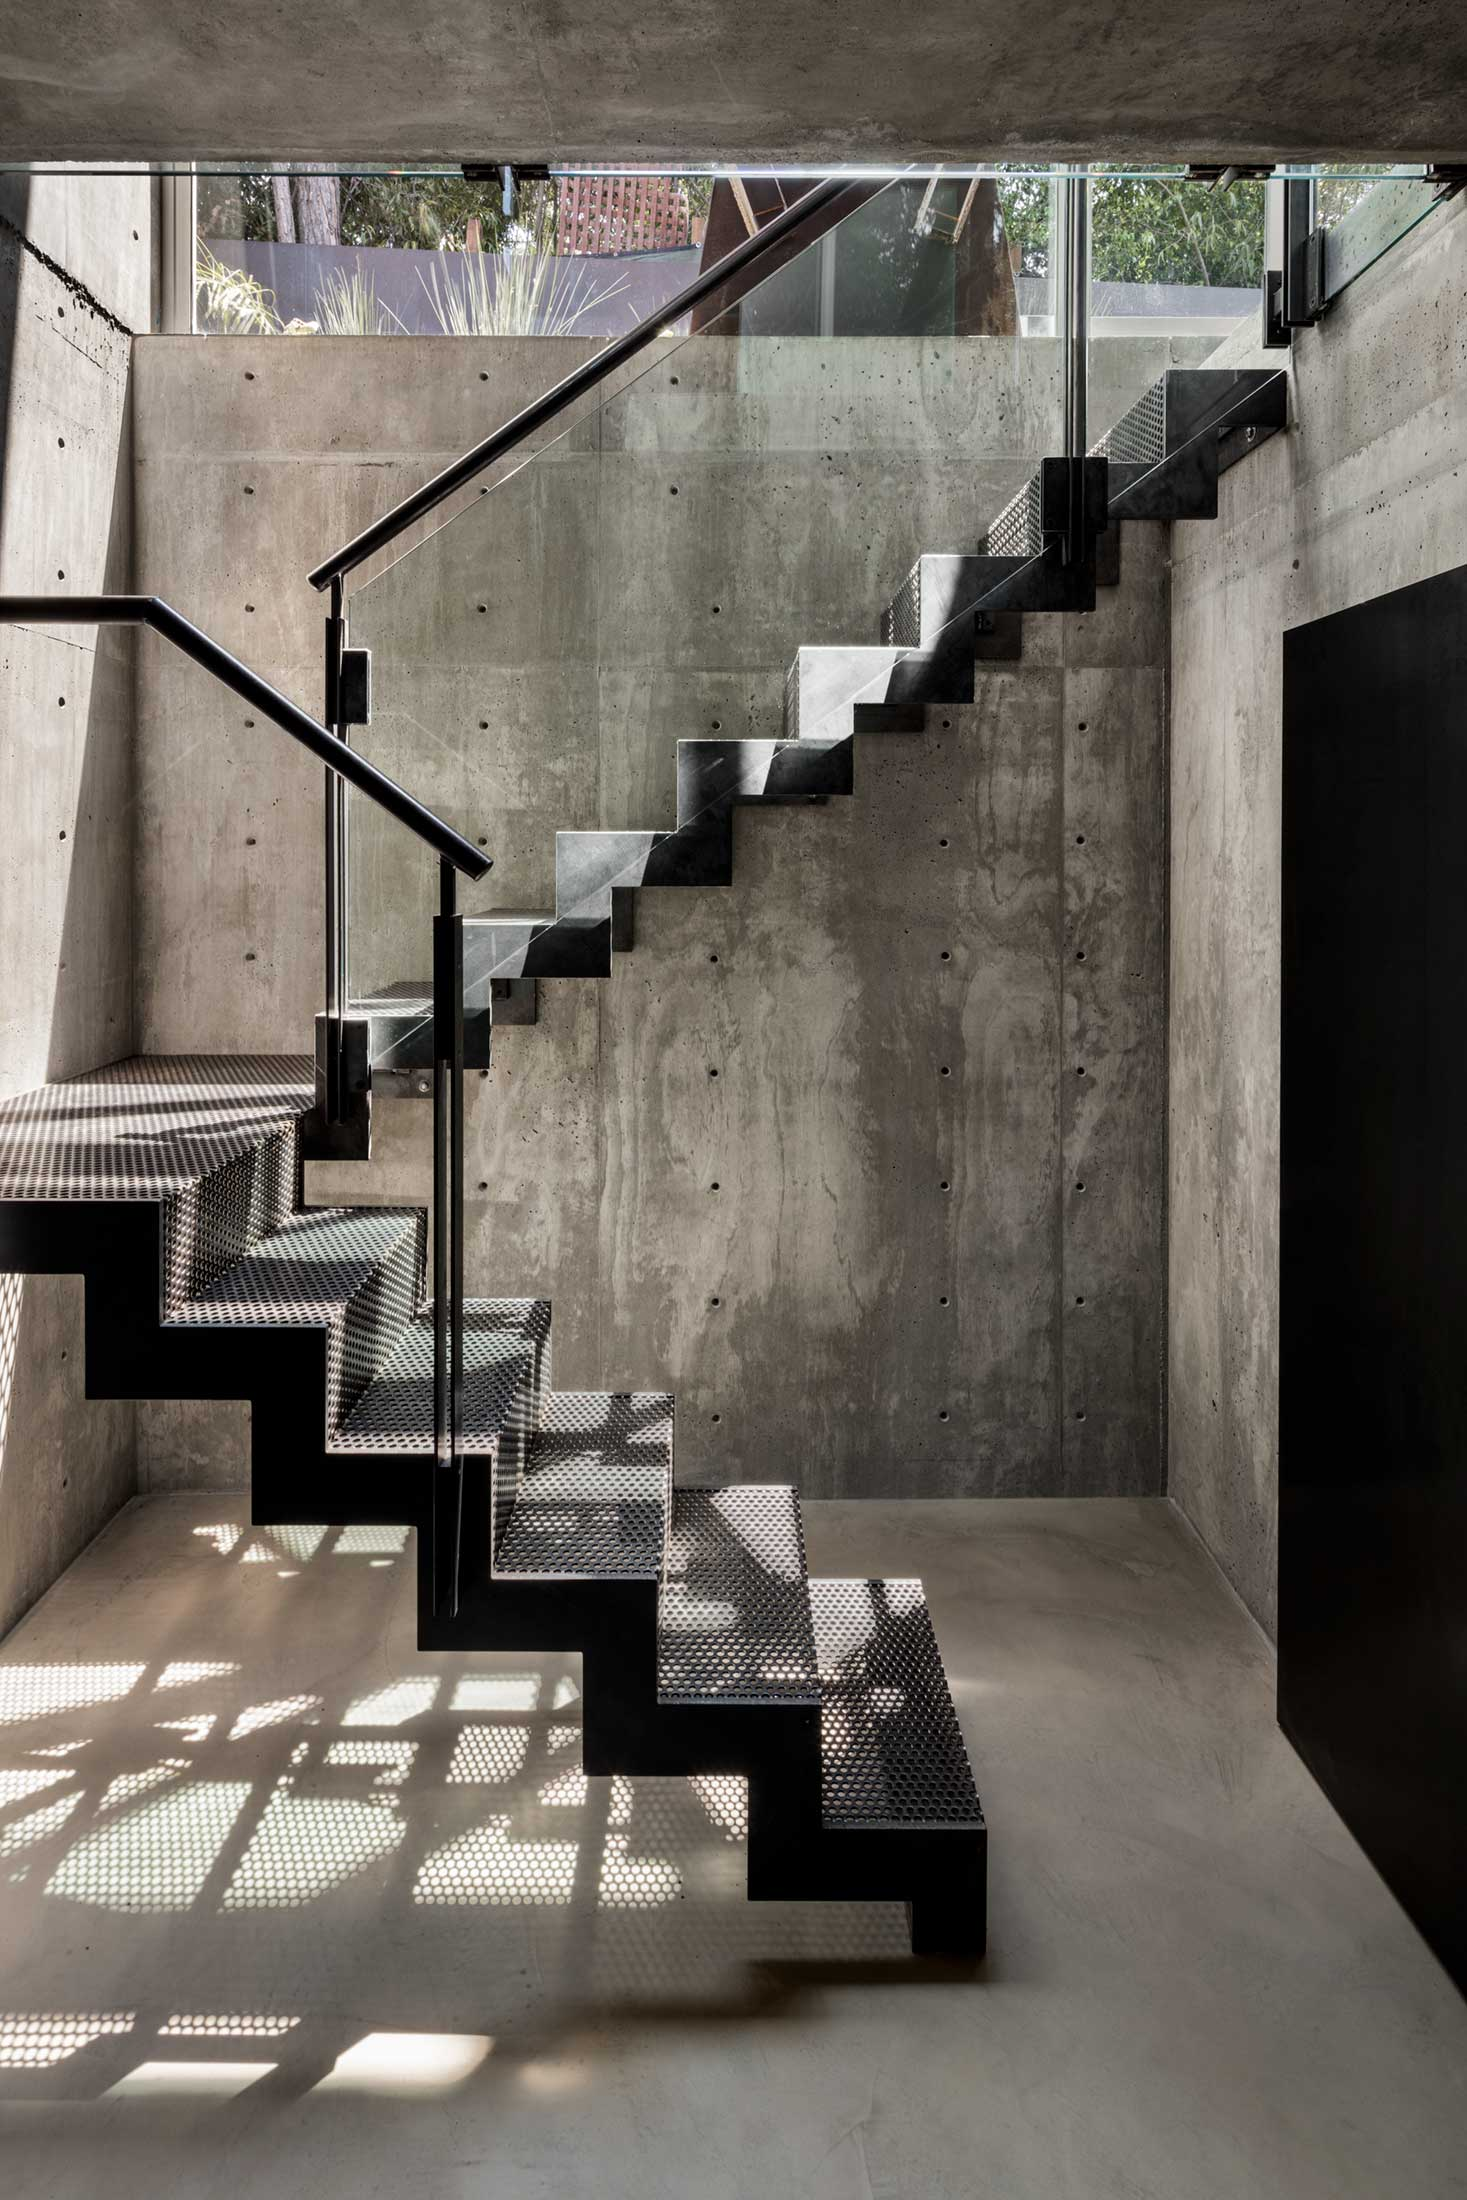 modern-architecture-residential-stairwell-concrete-california-shubindonaldson-skyline-4